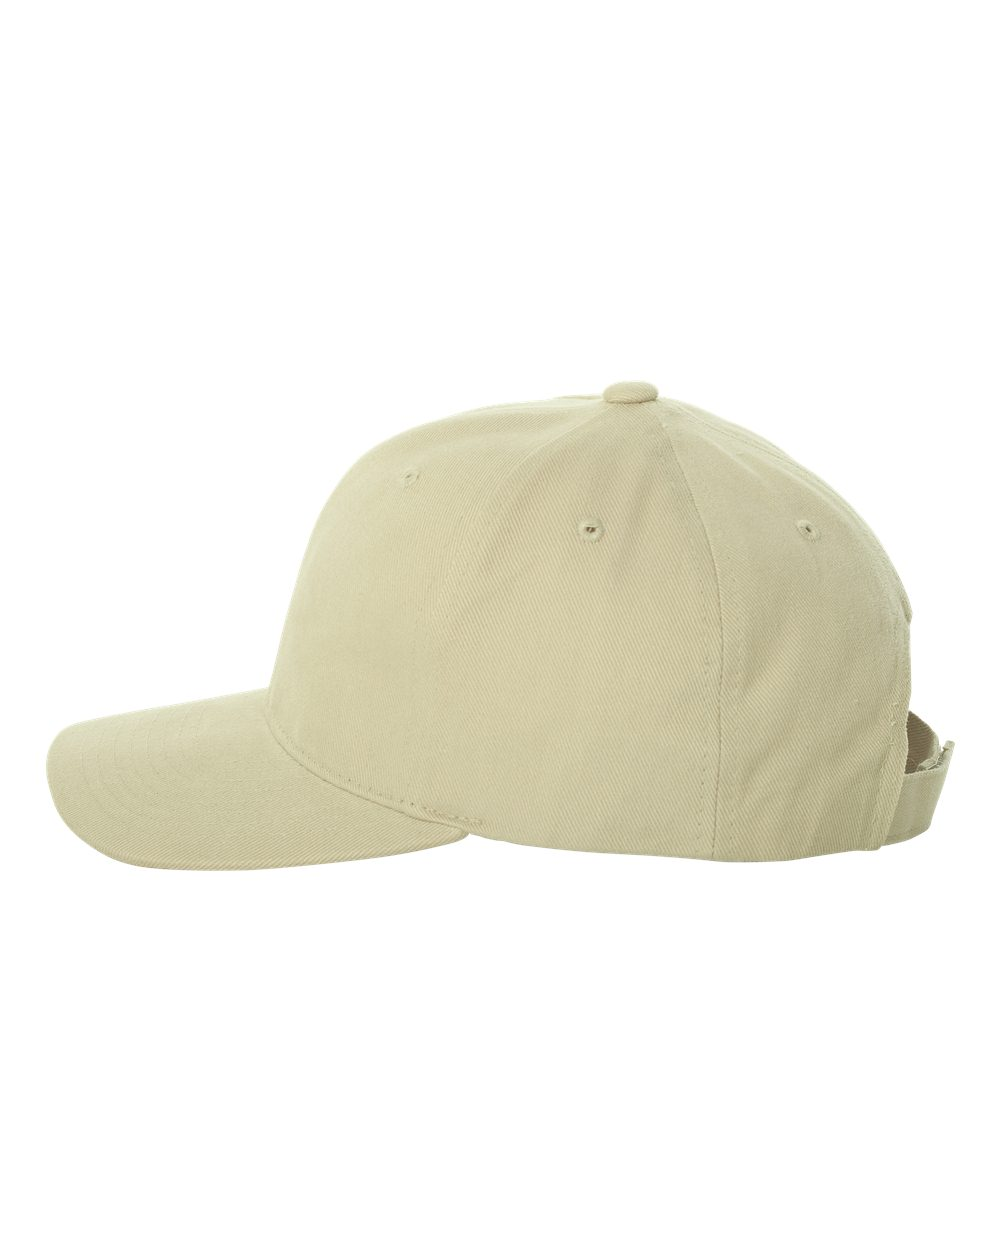 Yupoong Structured Brushed Twill Cap - 6363